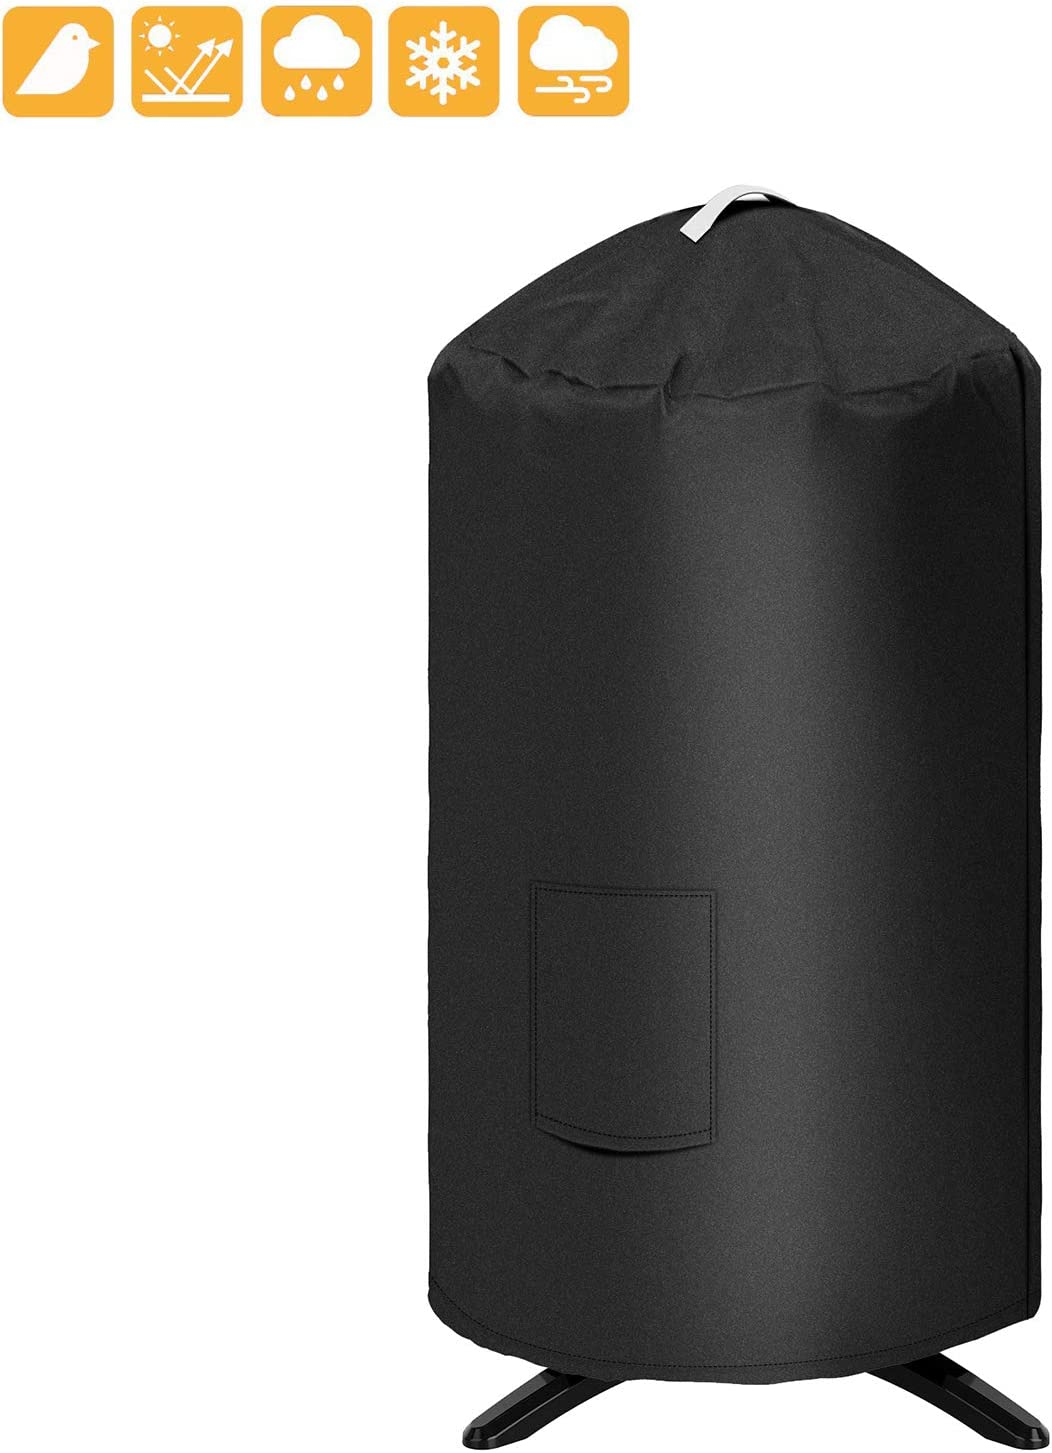 "Grisun Round Grill Cover for George Foreman GFO3320 GFO240 Grill, 19.5""(Dia) 32""(Tall) Water Proof Heavy Duty Outdoor Canvas BBQ Grill Cover Dome Smoker Cover Fits or Similar Size Grills"